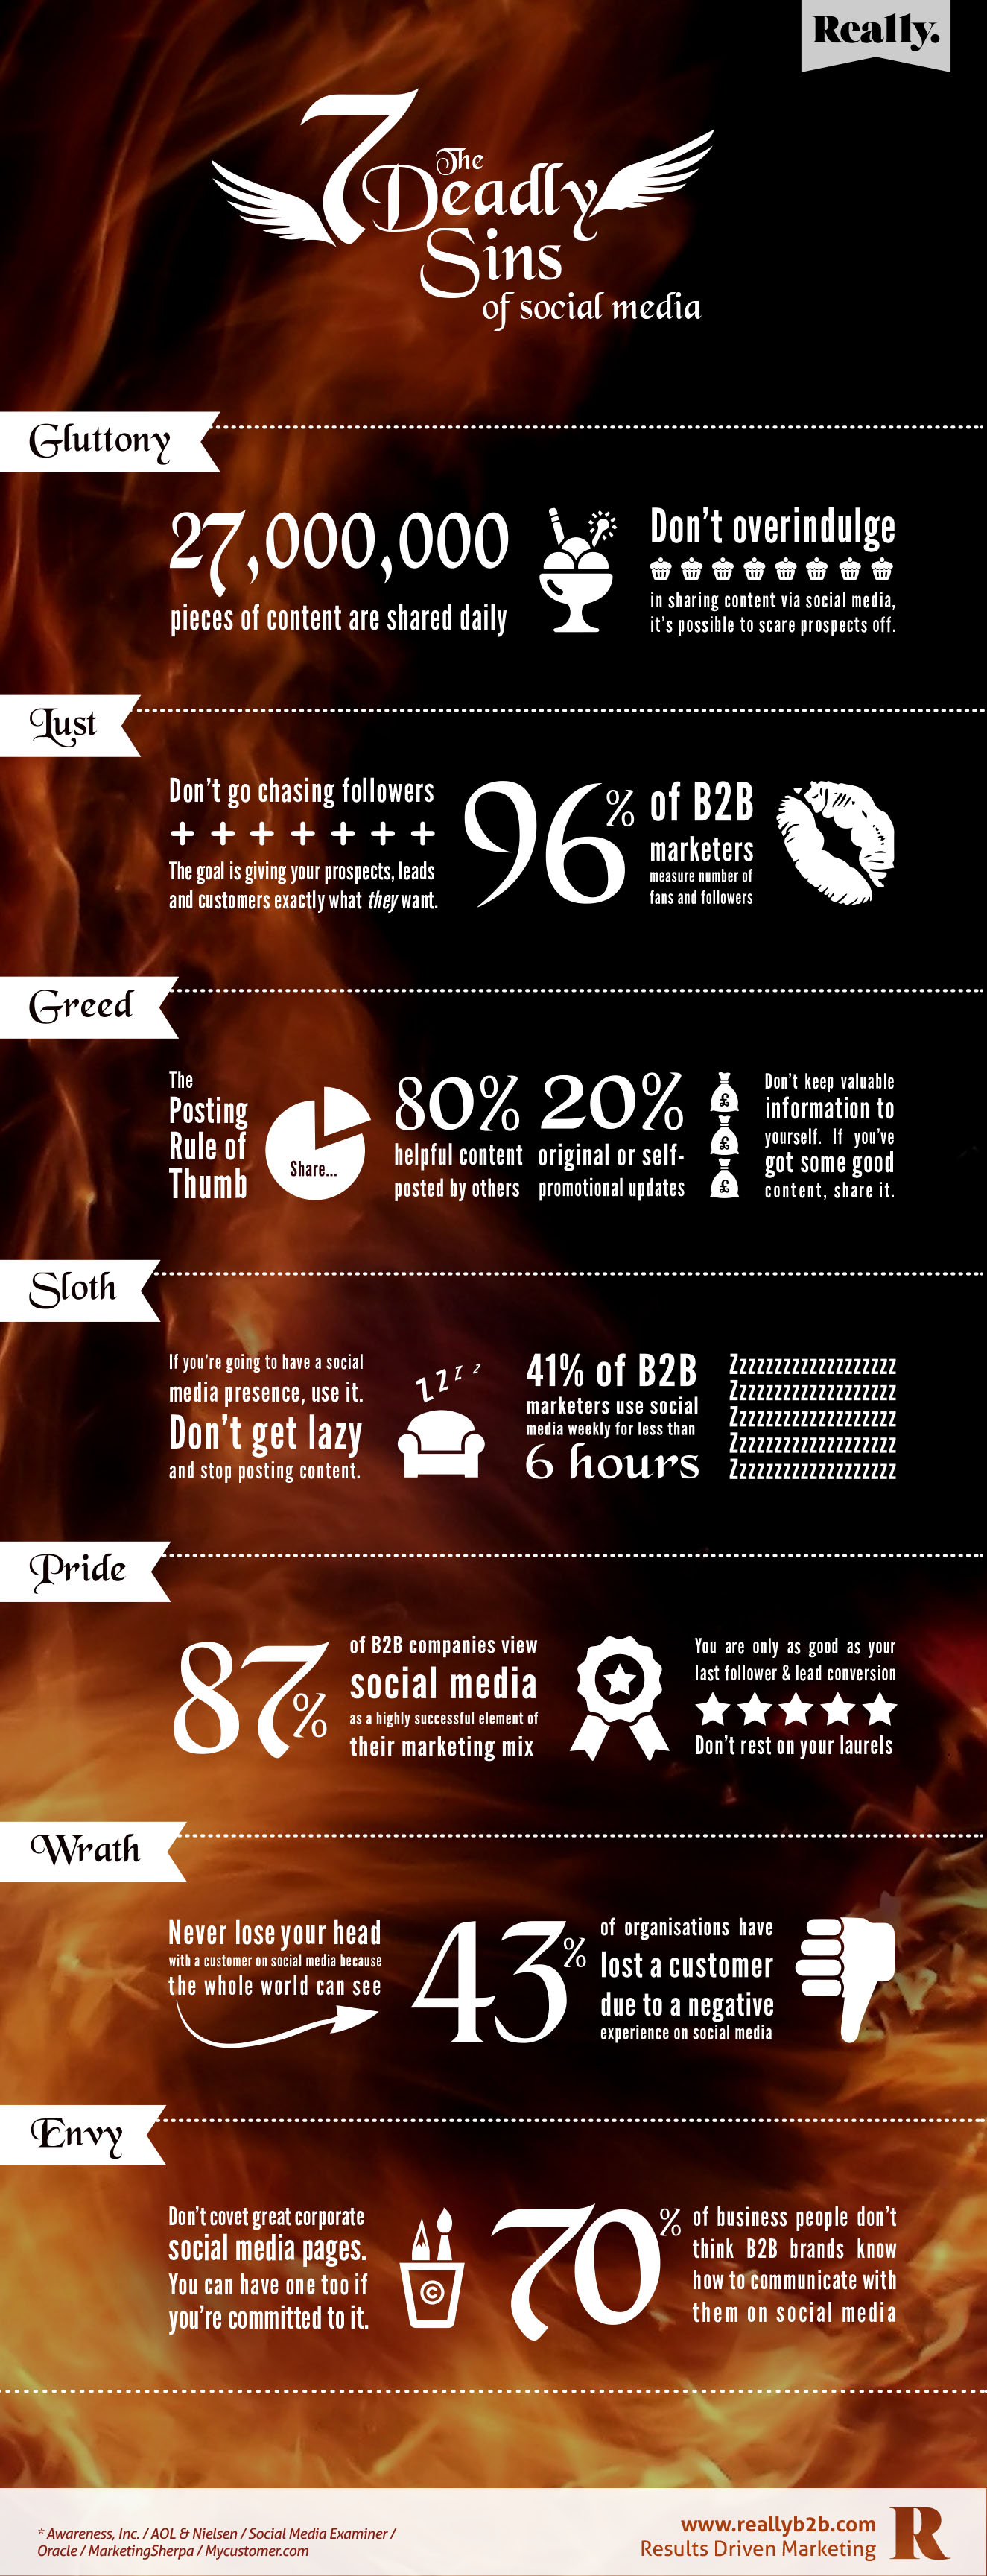 B2B Social Media - Seven Deadly Sins